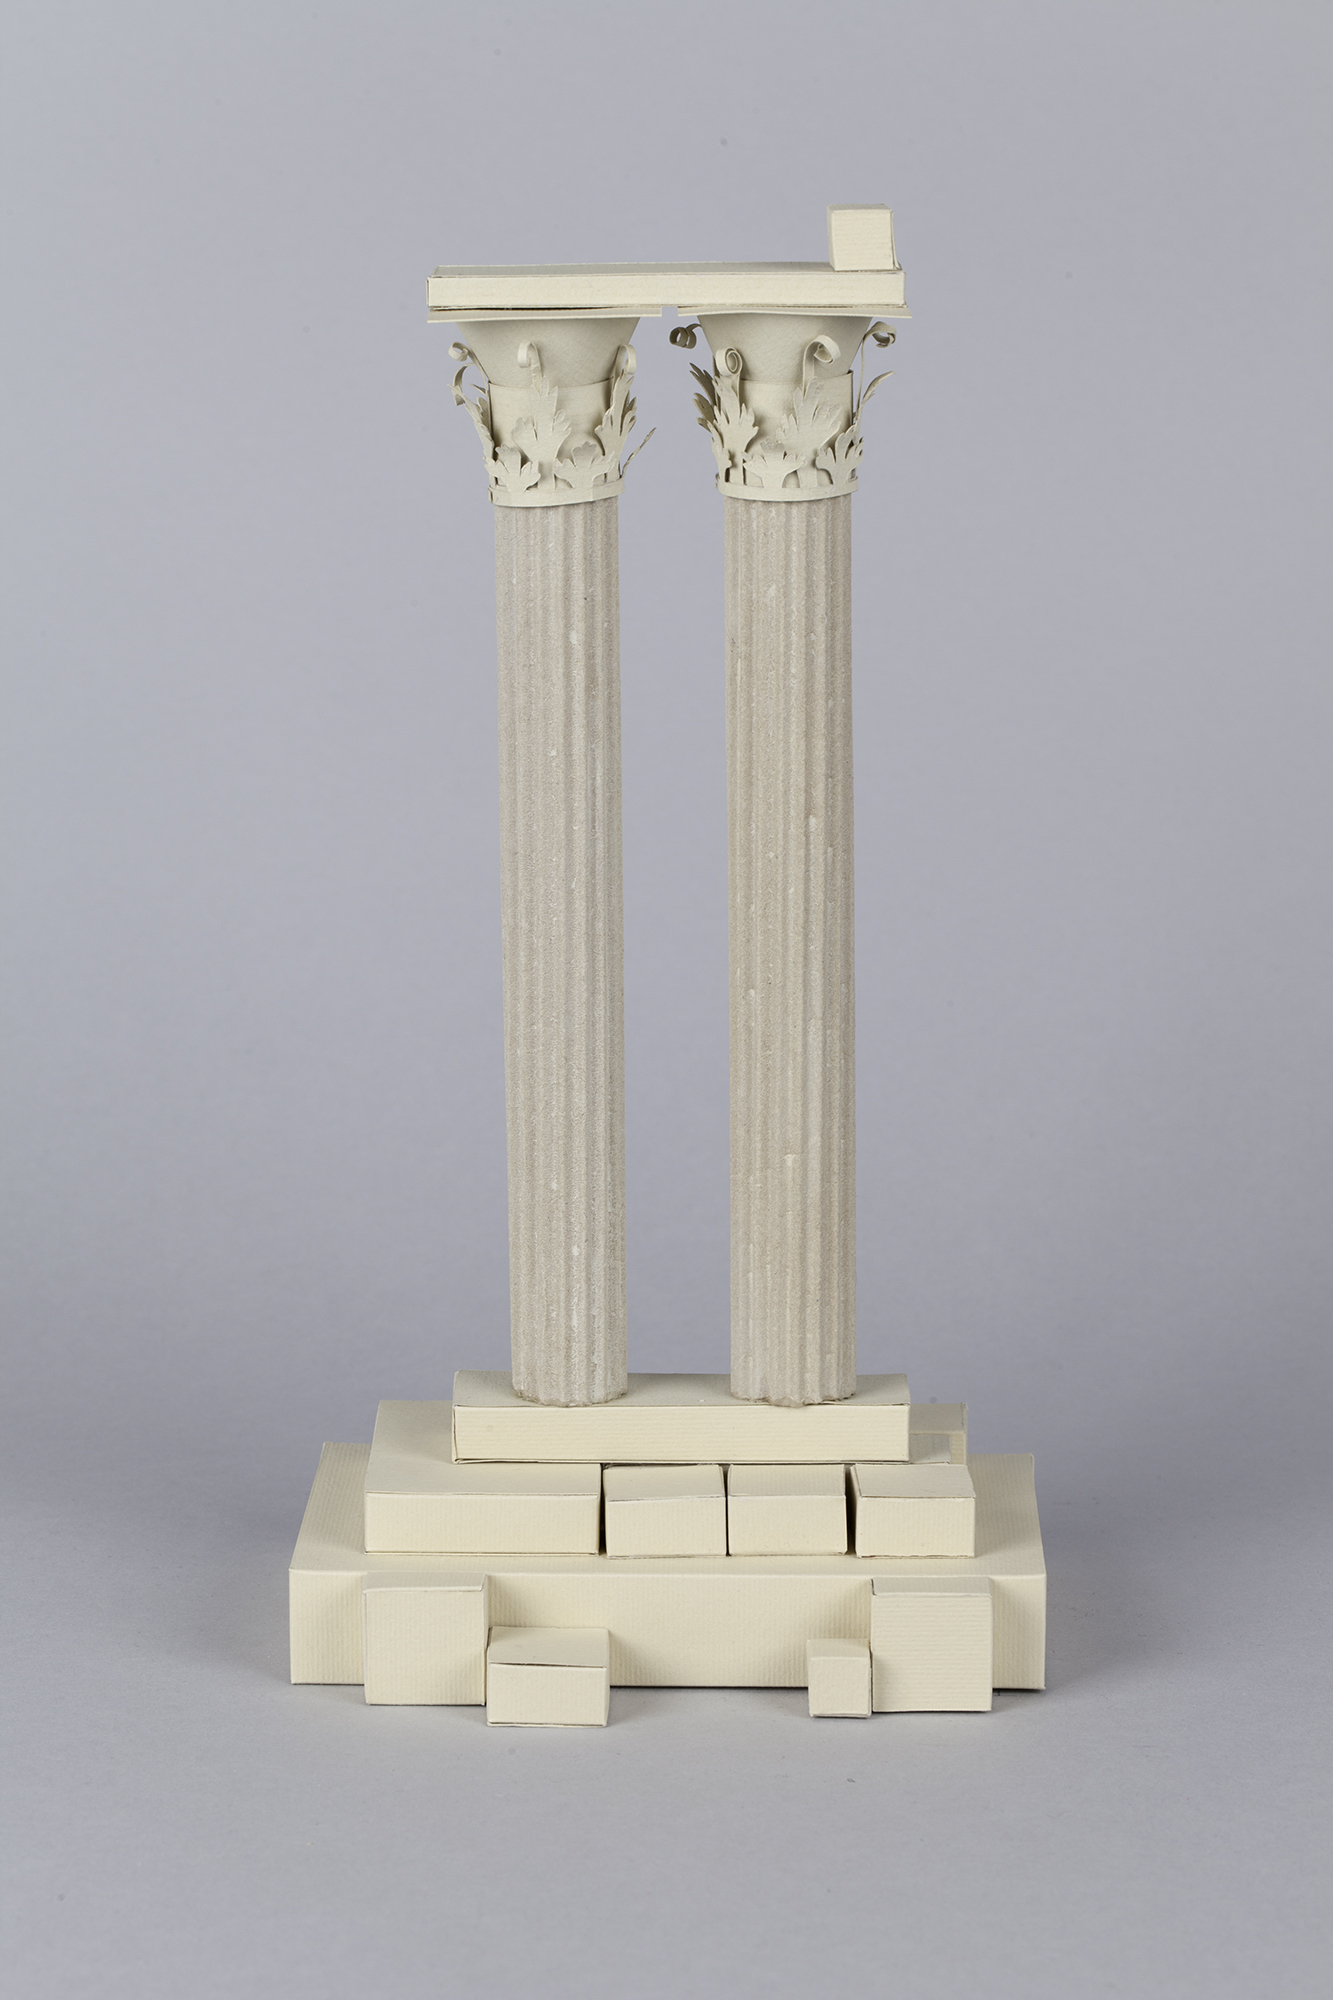 3D Letters for Silk Road Film Festival Crafted From Paper - Greek Columns